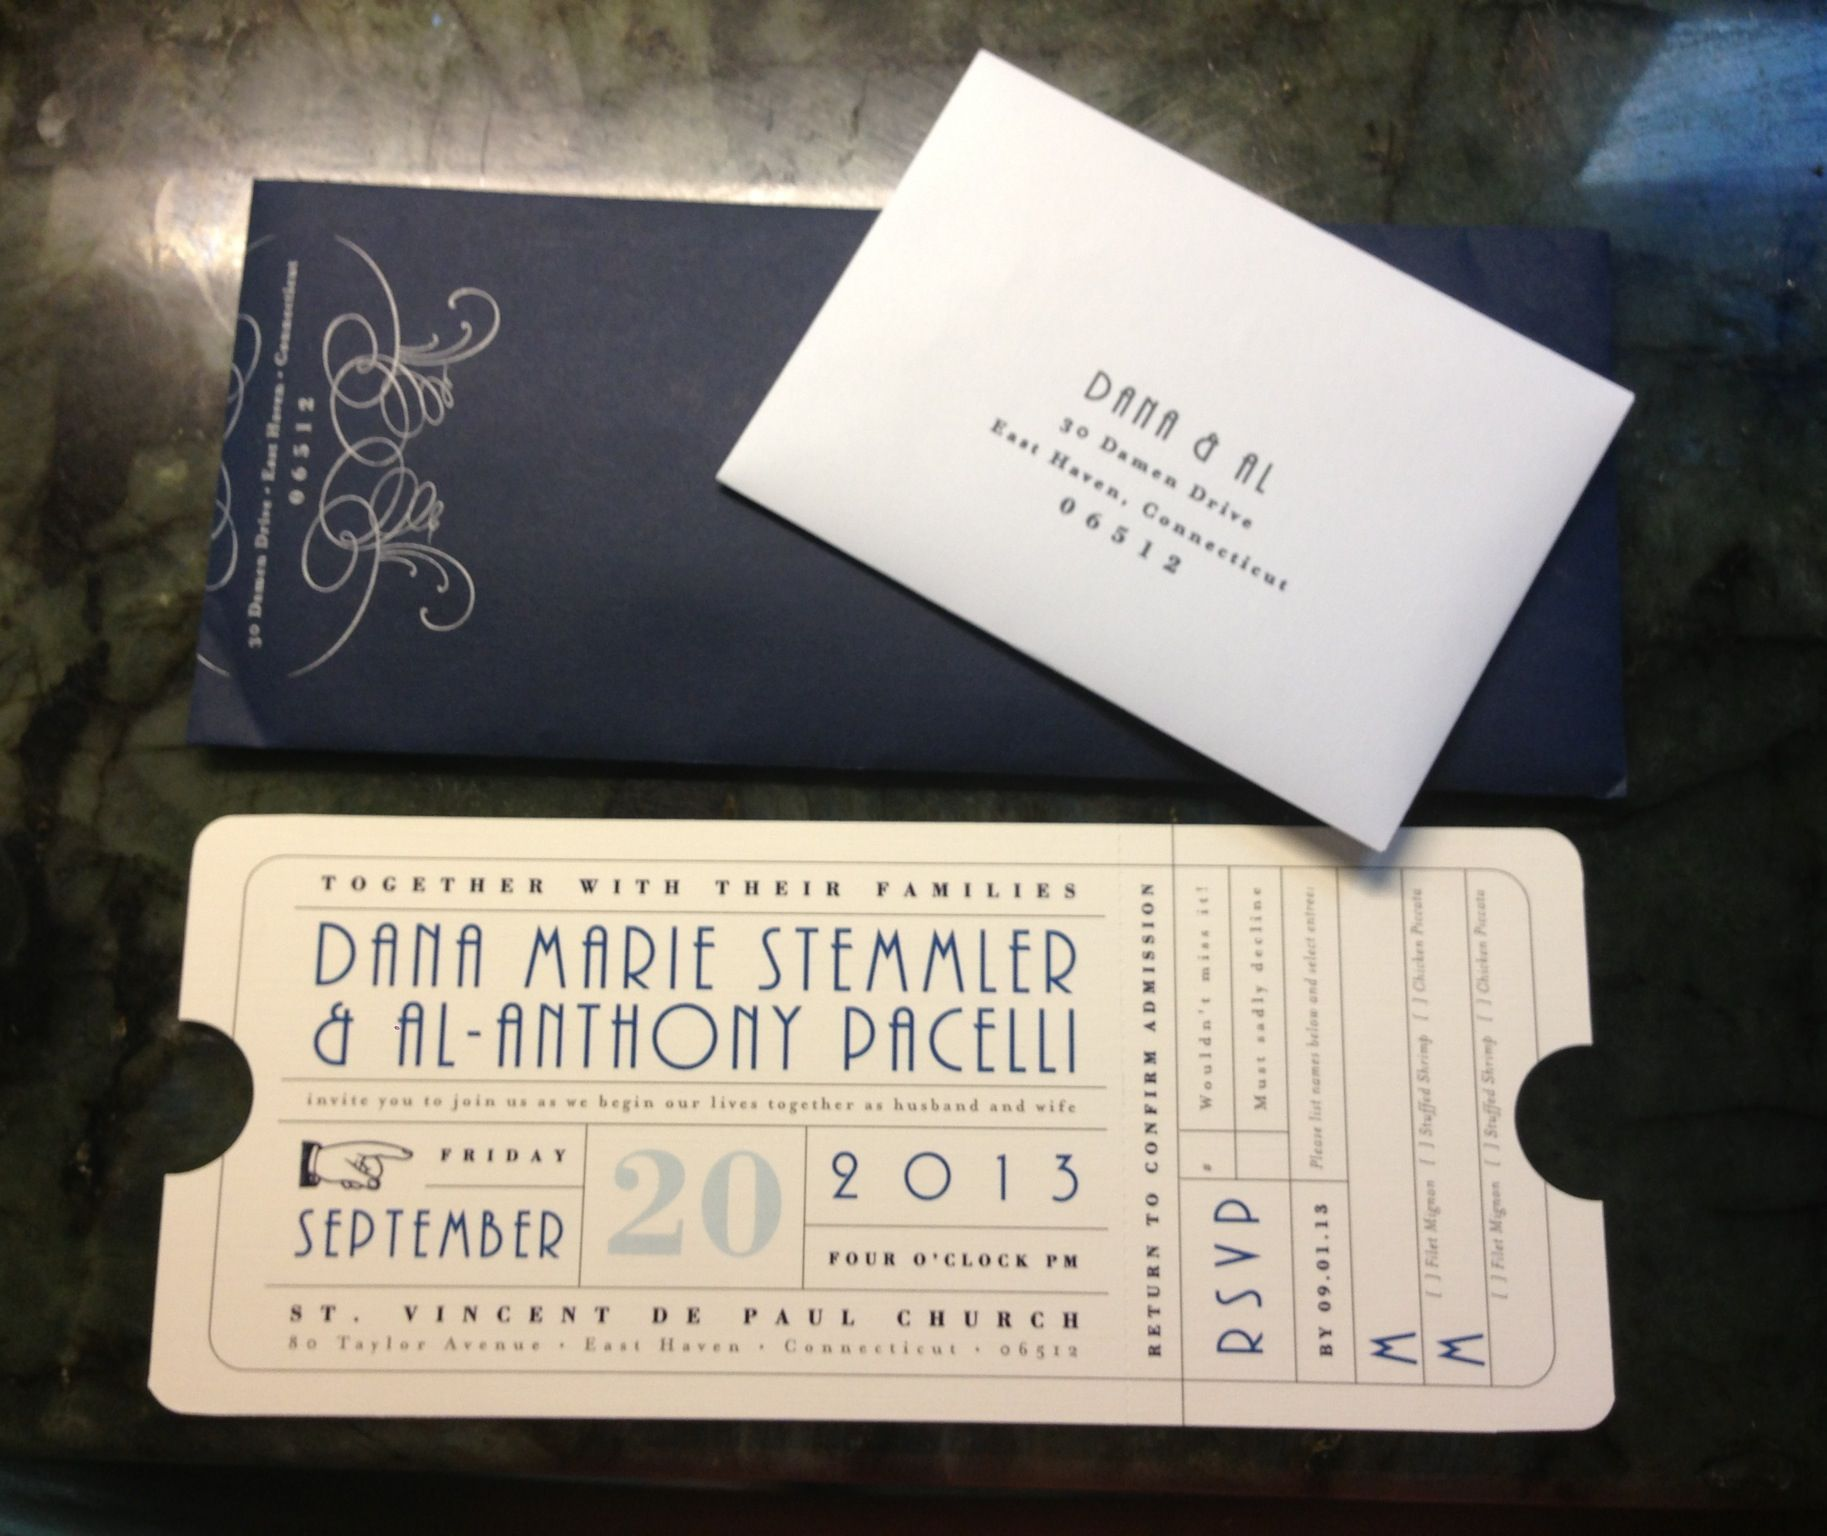 Wedding invitation. Looks like an old train ticket to match my